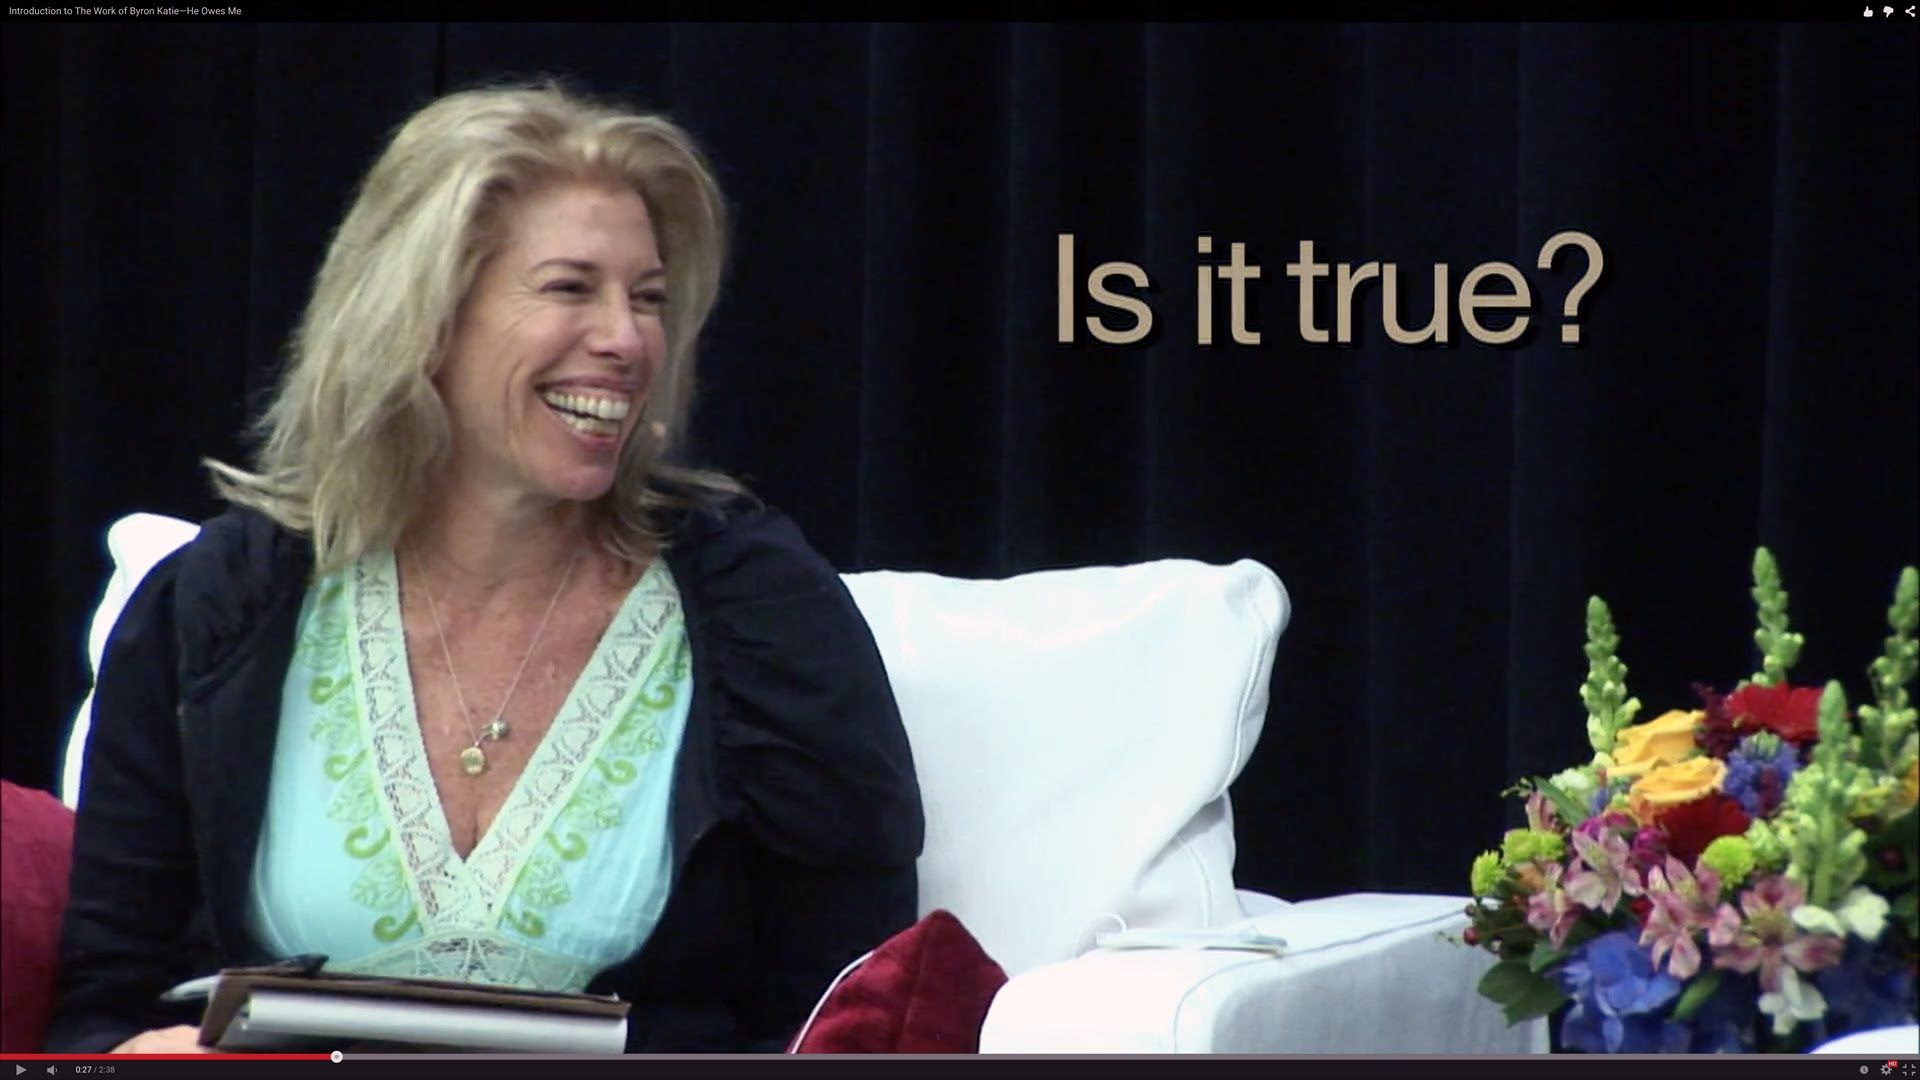 Introduction To The Work Of Byron Katie He Owes Me With